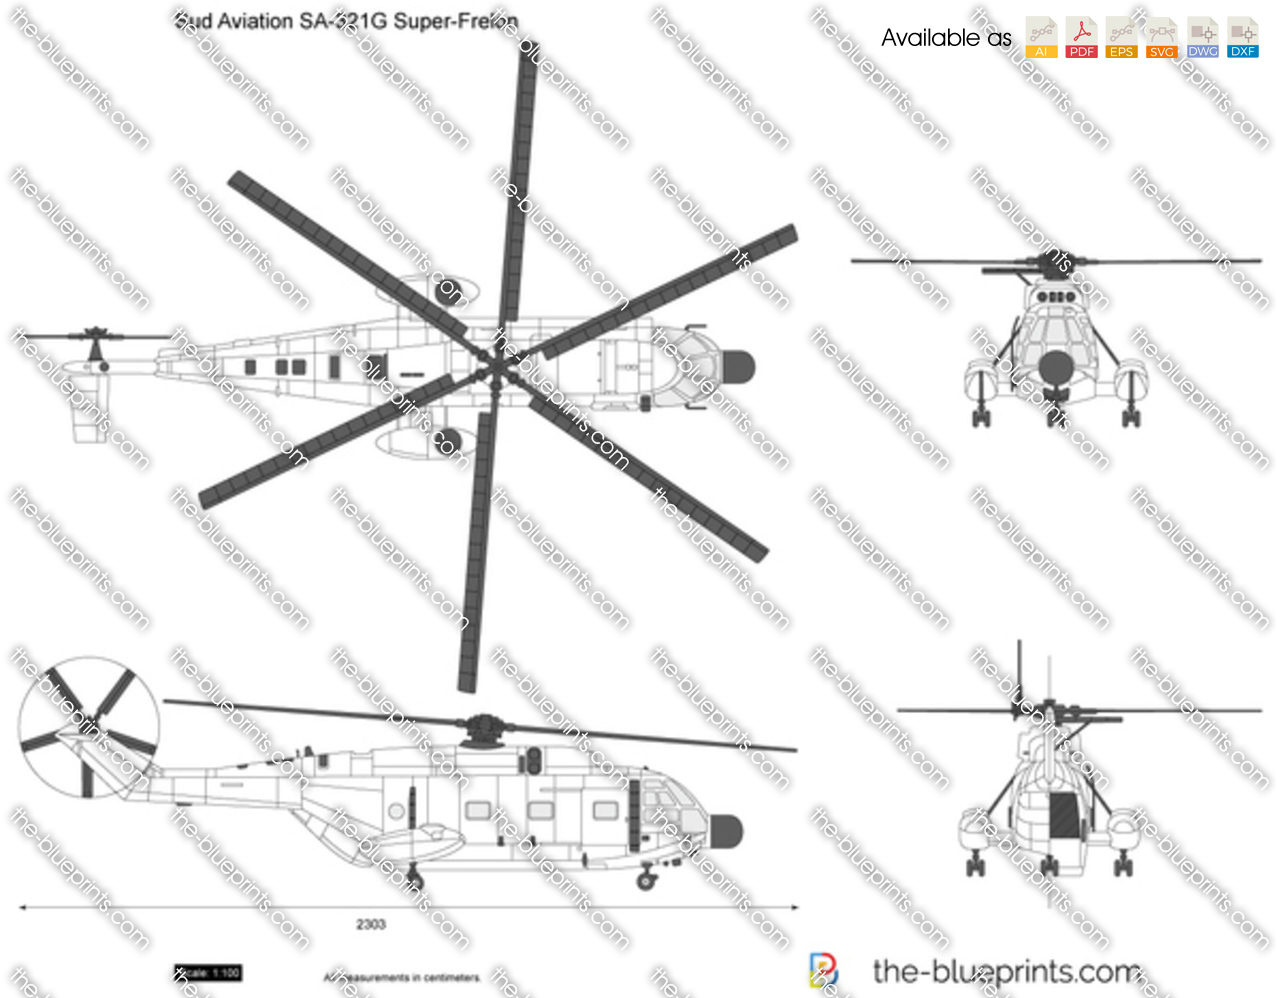 Sud Aviation SA-321G Super-Frelon